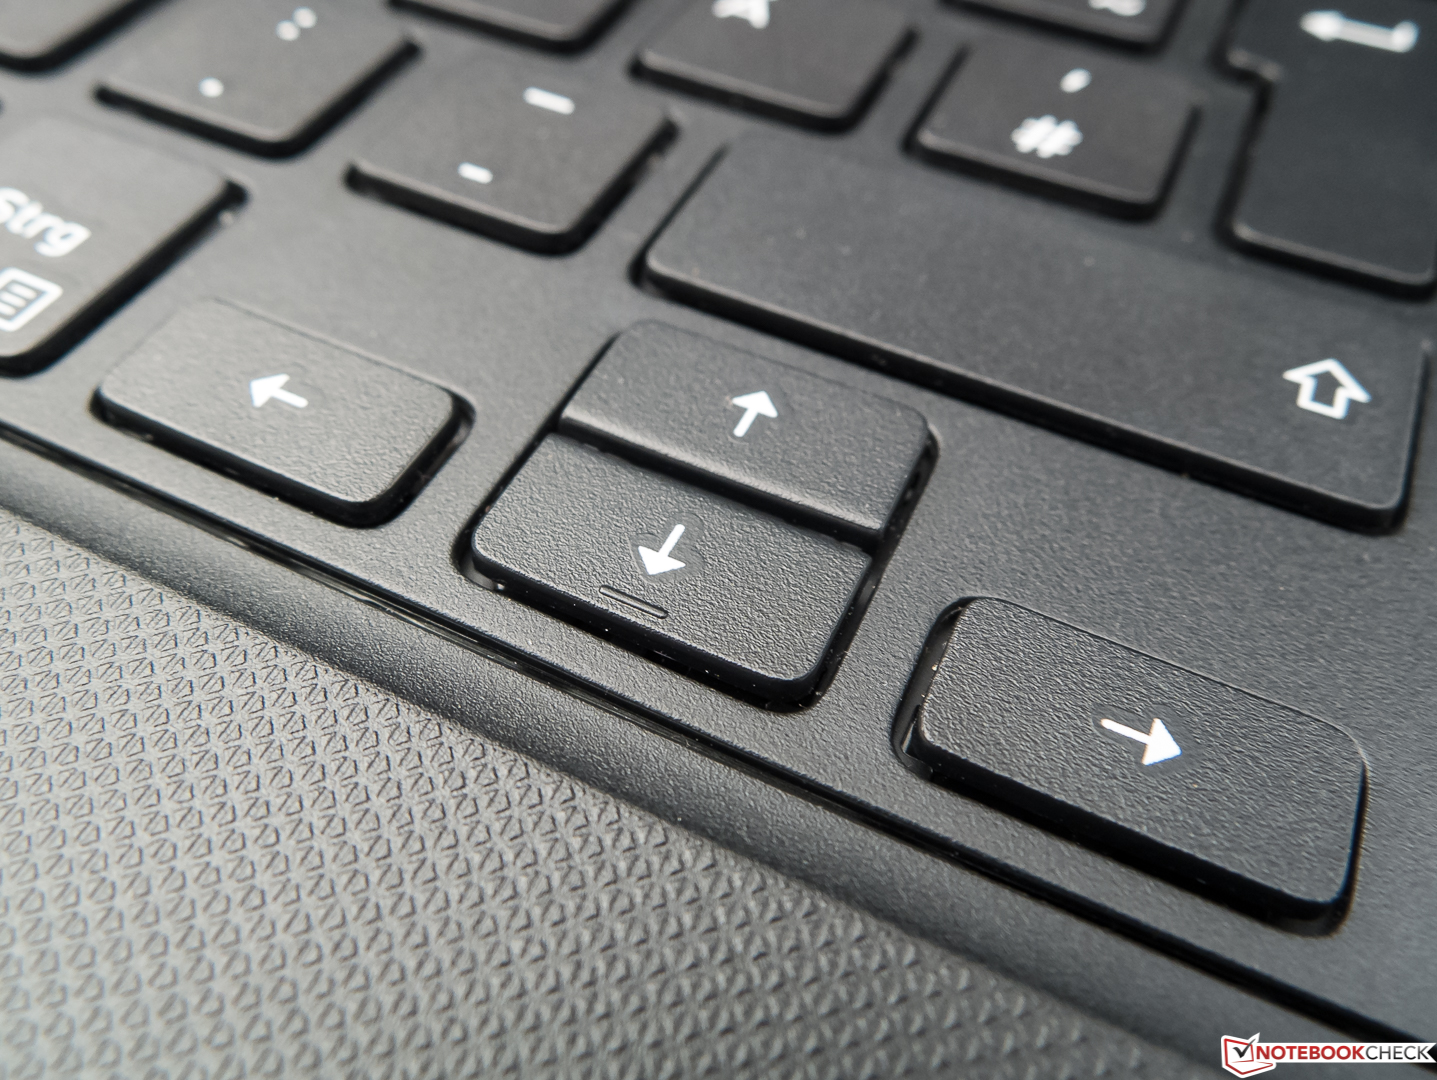 Dell Vostro 15 3568 (7200U, 256GB) Laptop Review - NotebookCheck net